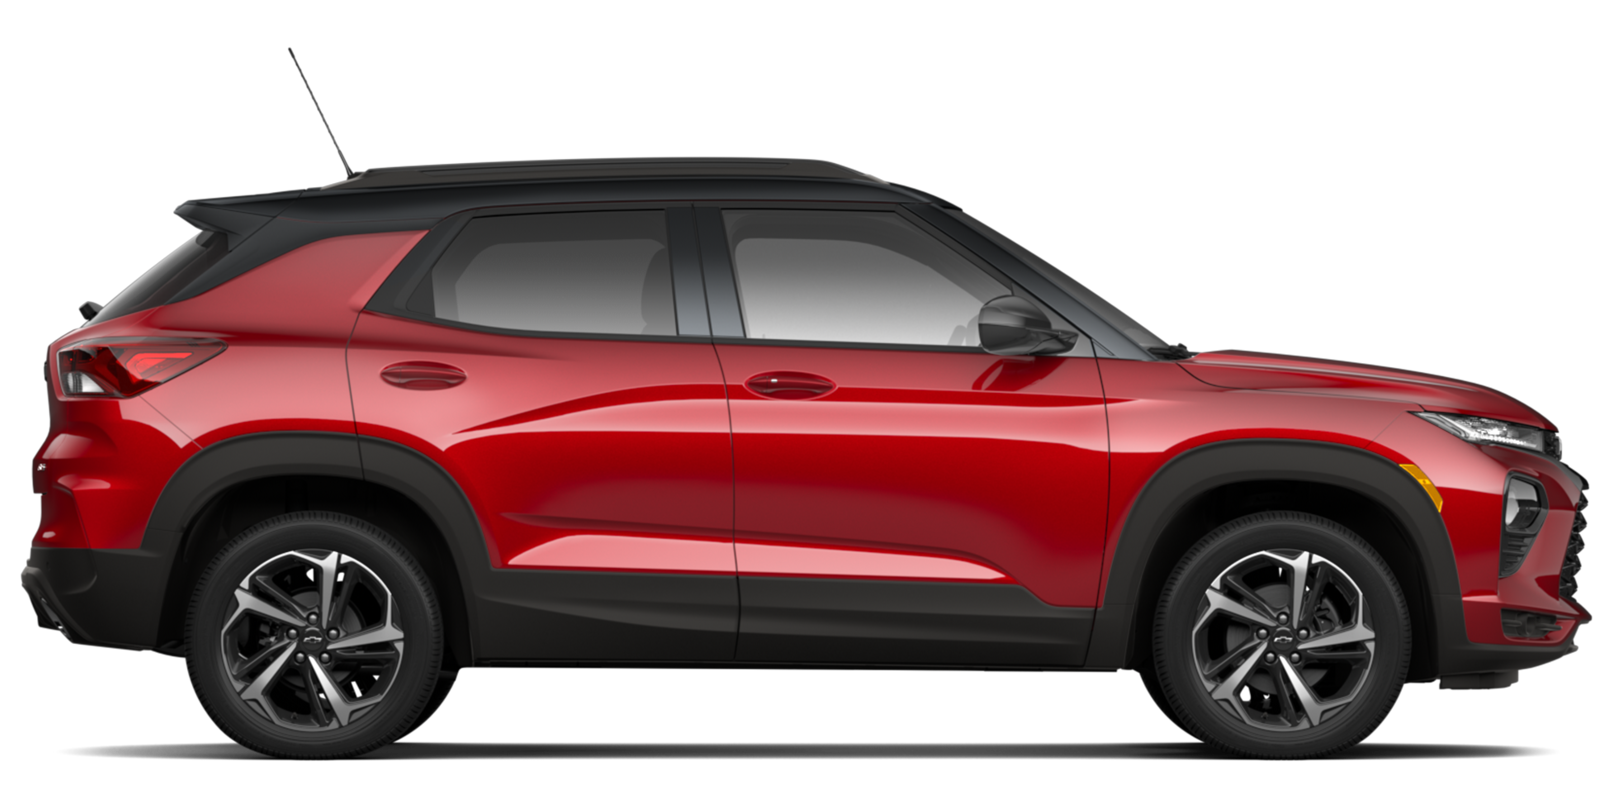 2021 chevy trailblazer forum